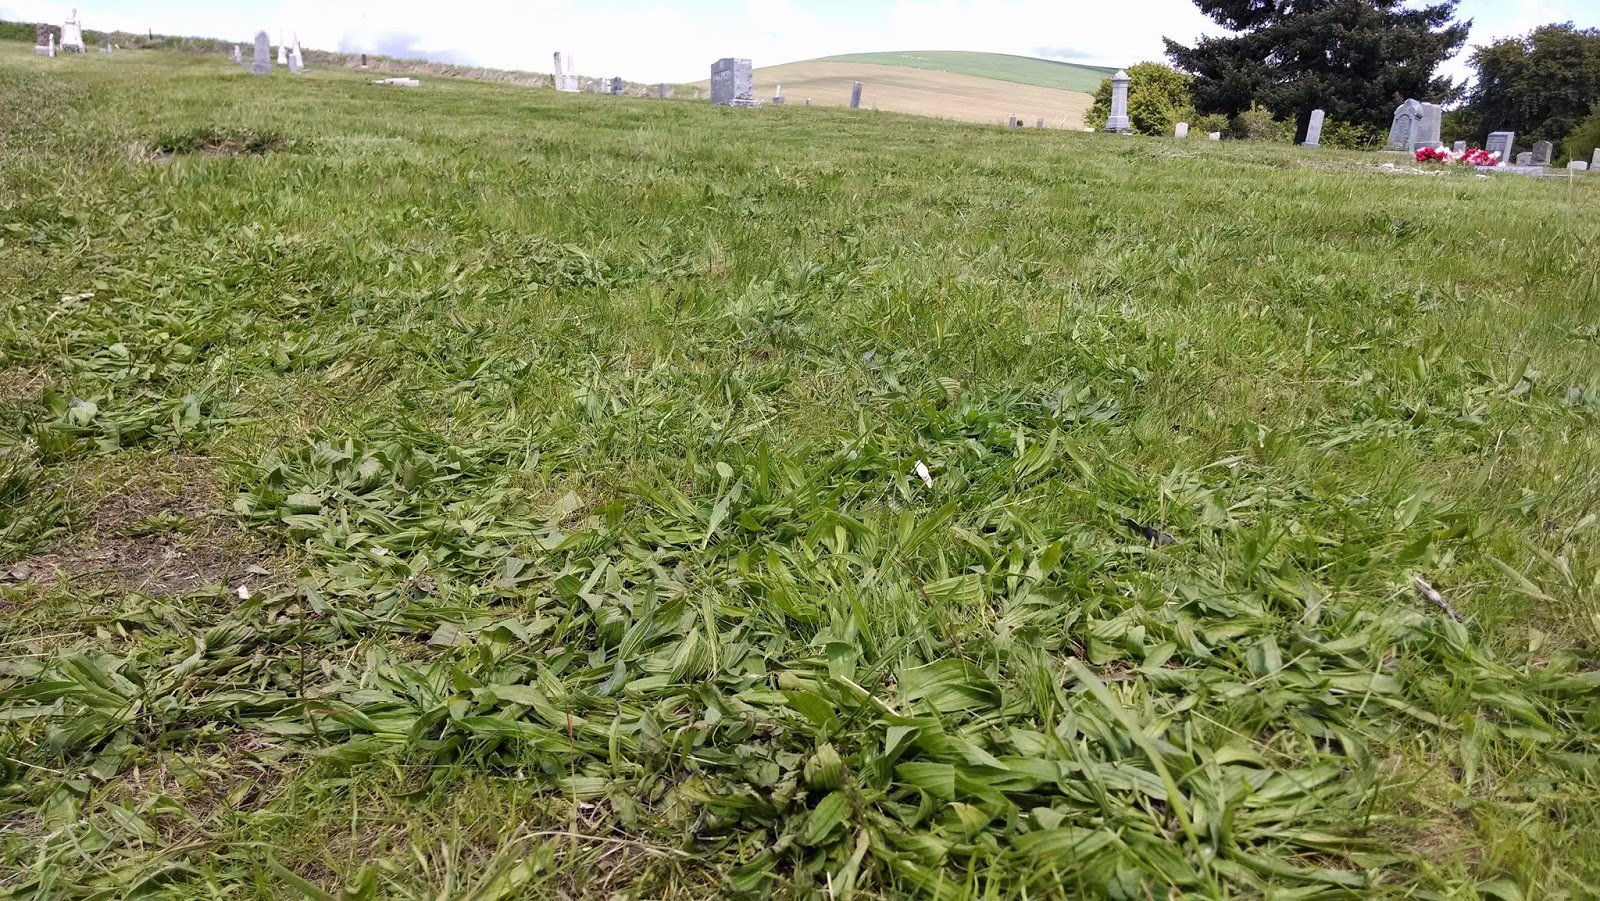 weeds, lawn weeds, dandelions, driveway, gravel, sterlization, weed control, 99362, walla walla, milton freewater, dayton